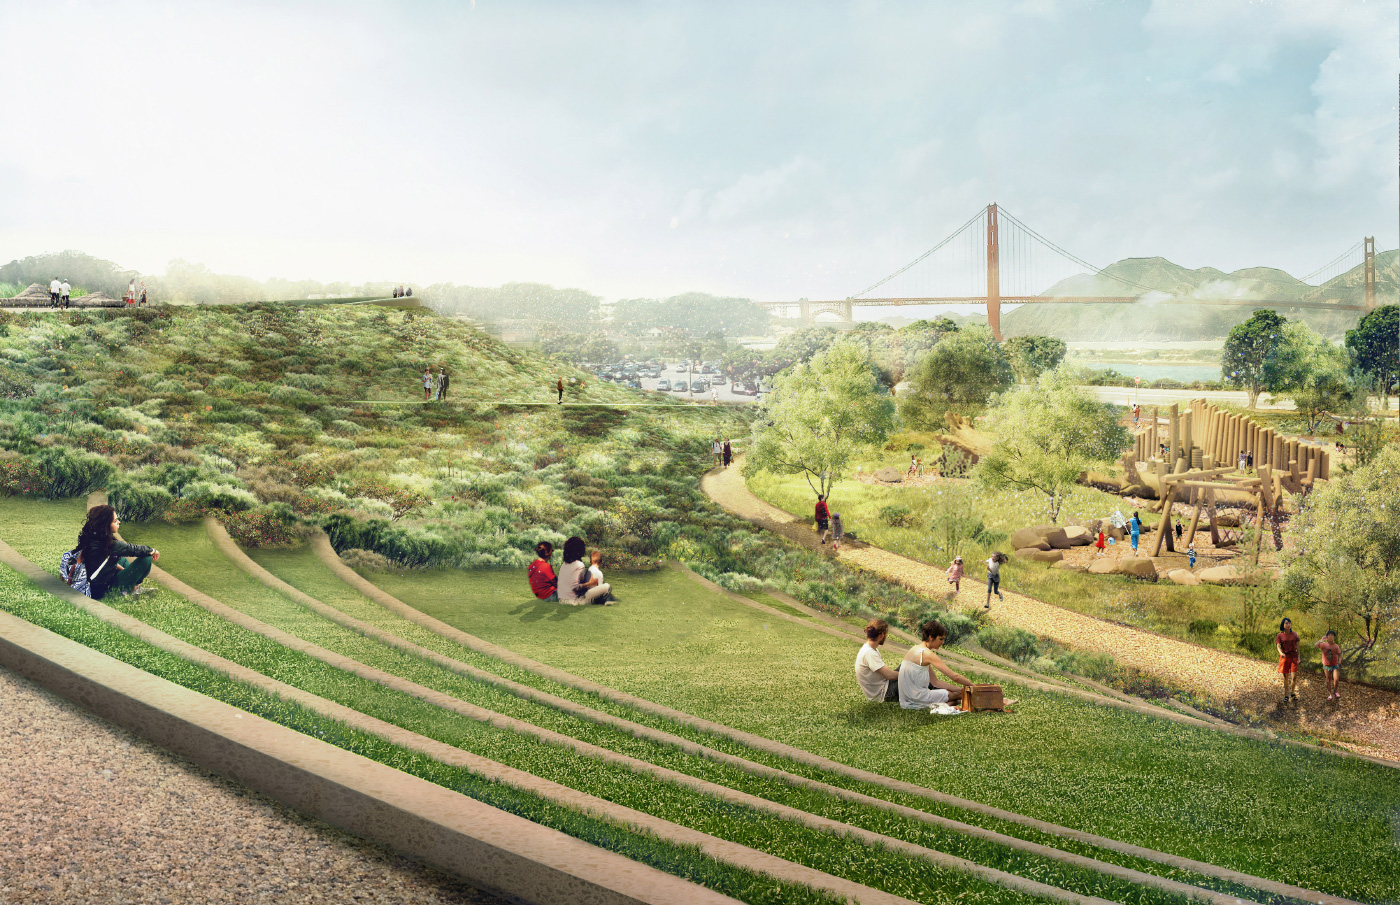 Rendering of the Presidio with tiered steps looking out to the bridge